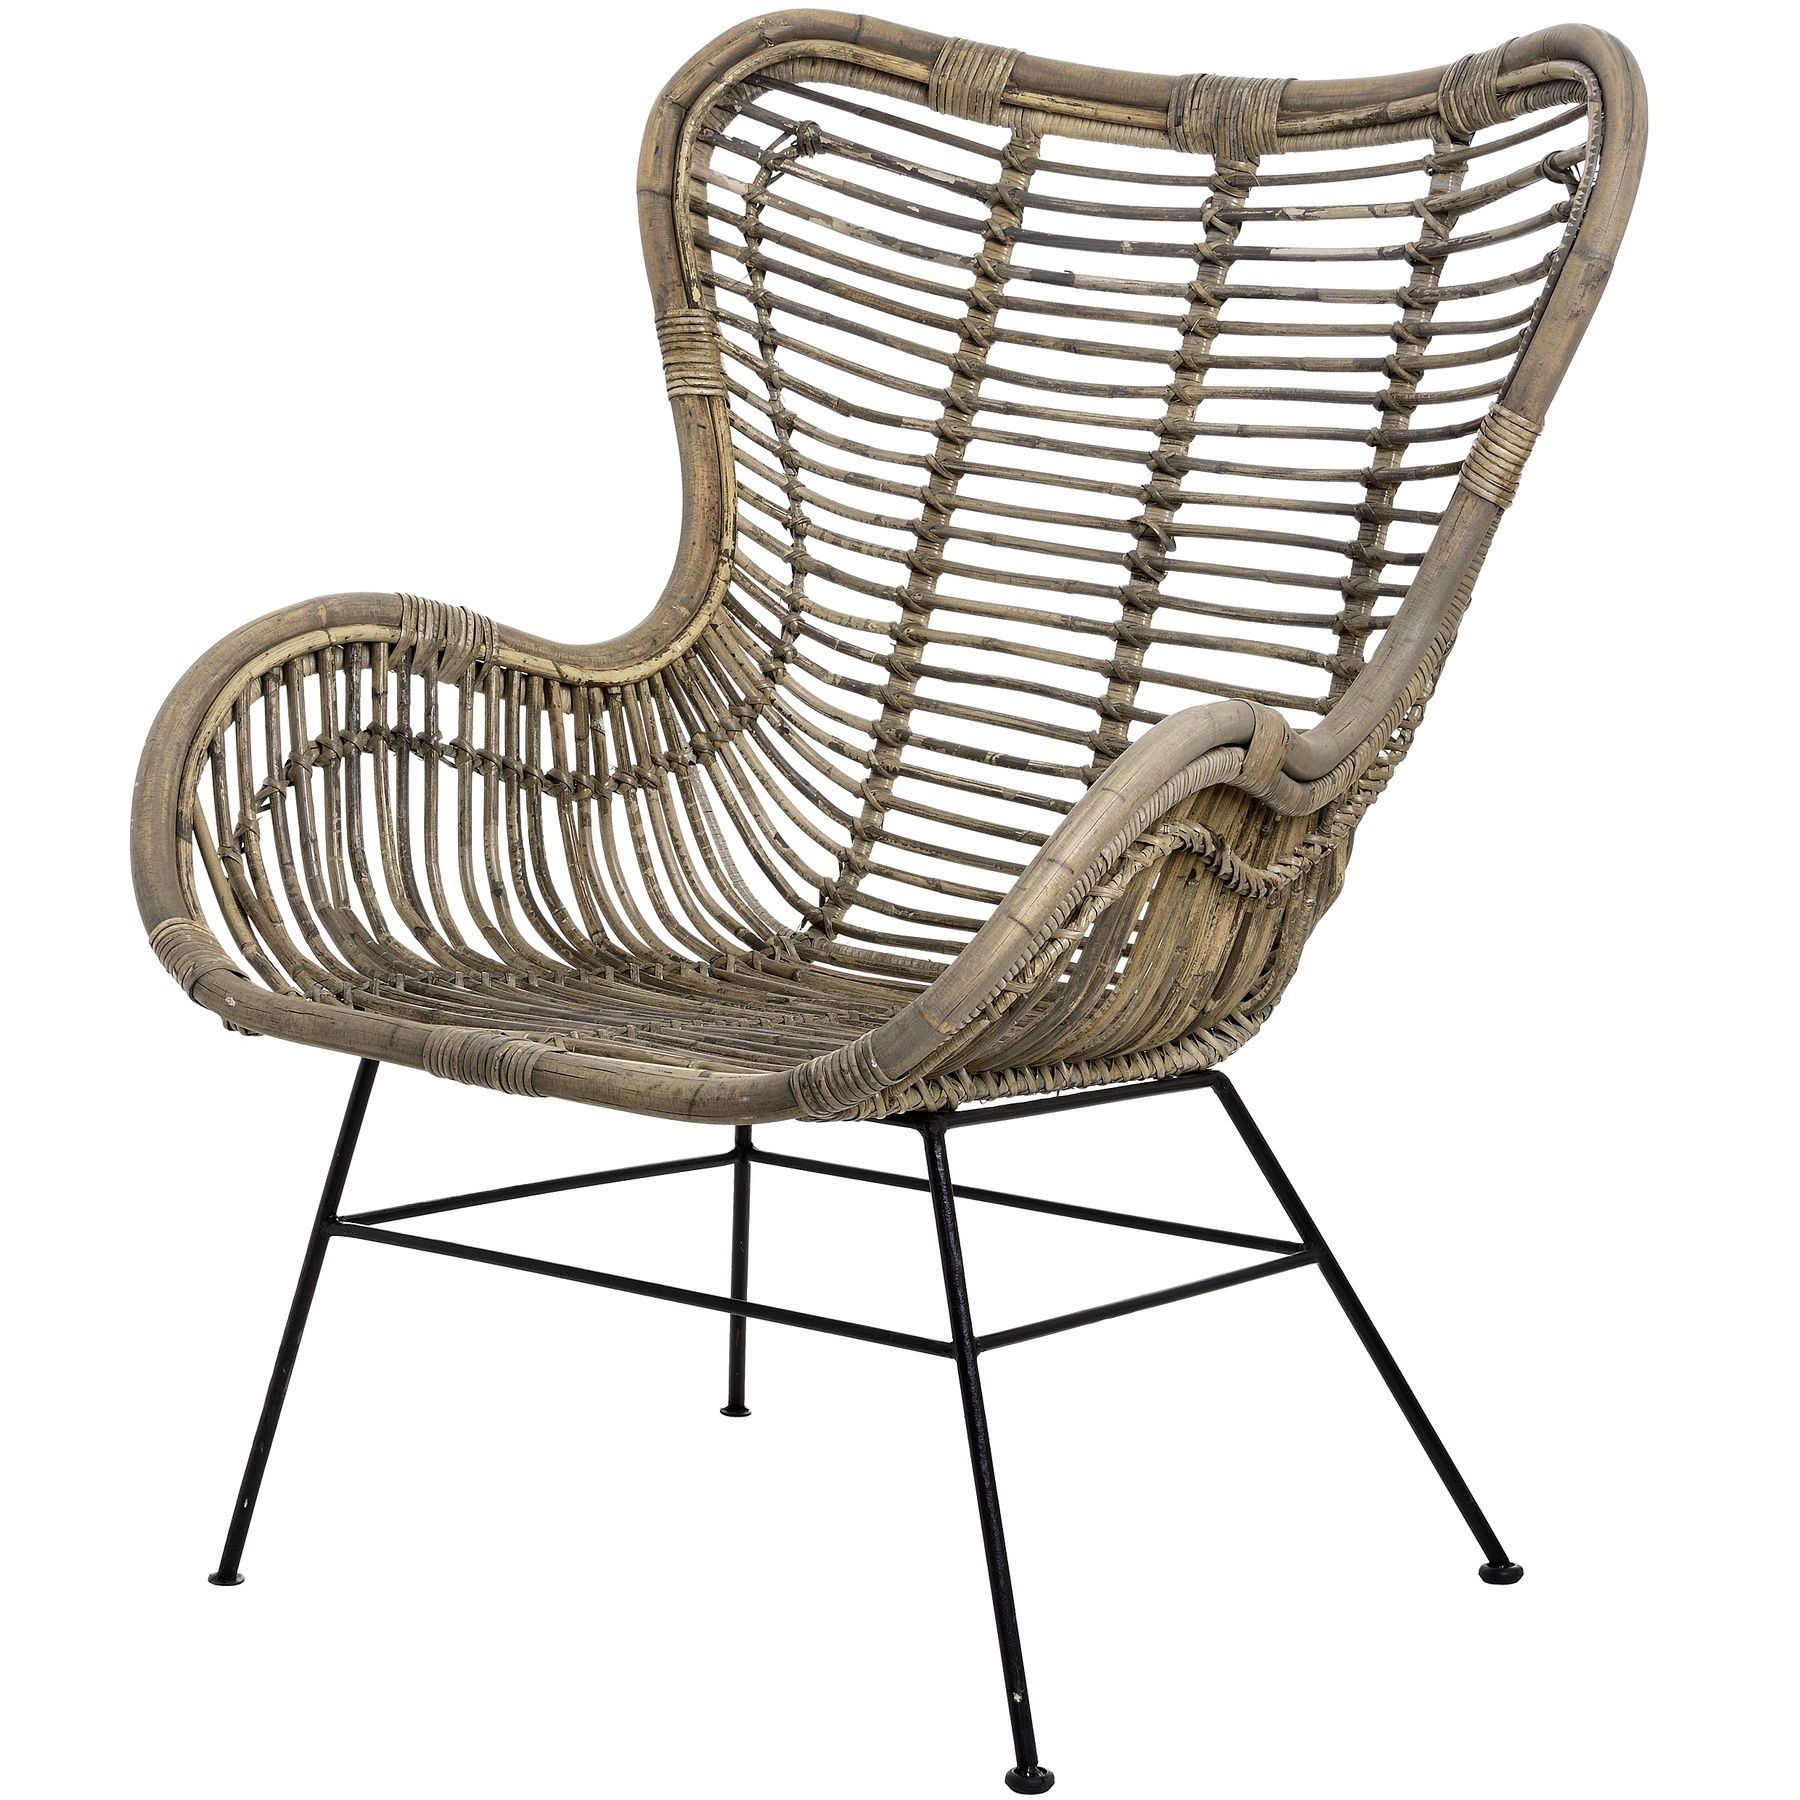 Cool Rattan Bamboo Armchair Bali Wooden Arm Chair With Metal Ibusinesslaw Wood Chair Design Ideas Ibusinesslaworg